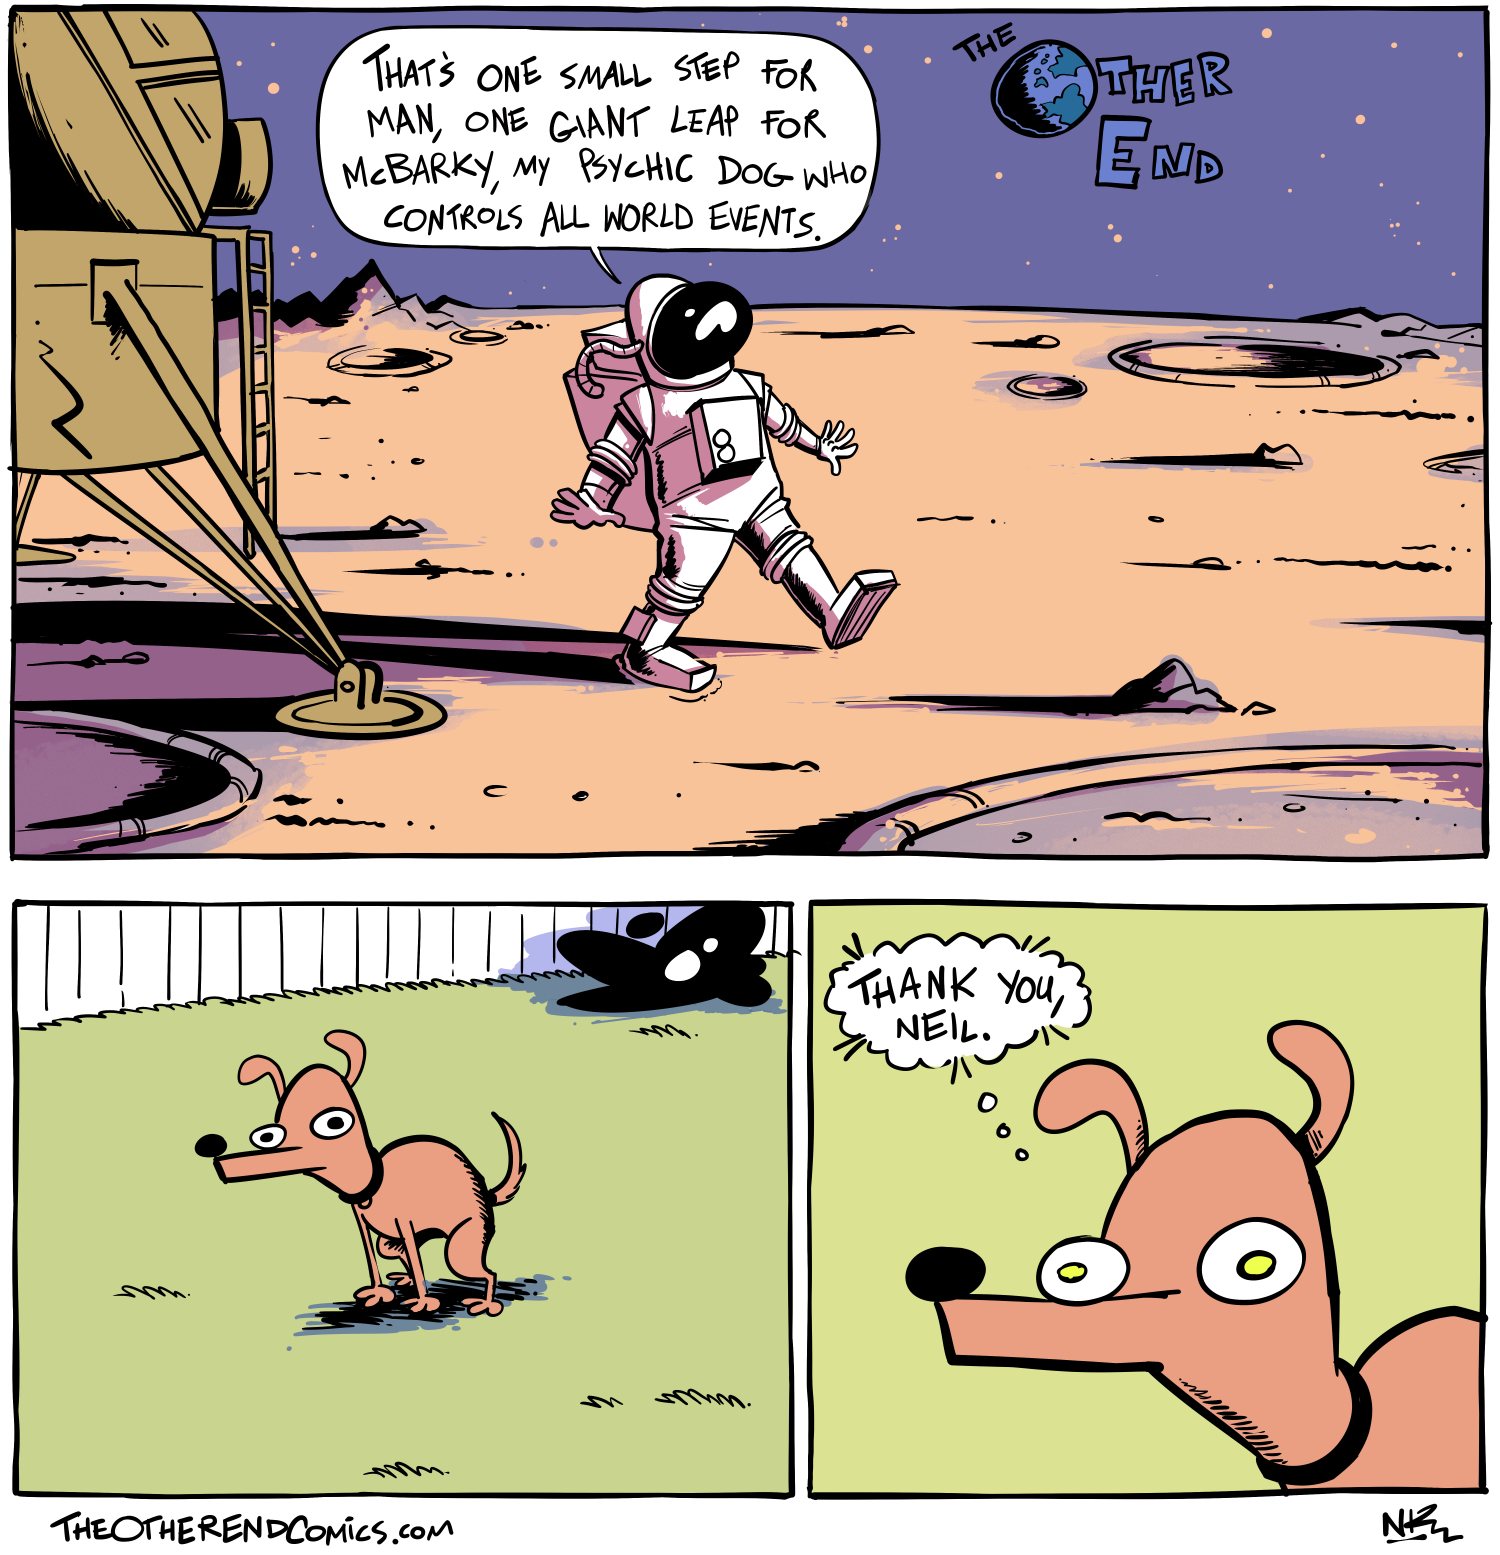 The psychic dog who controls all world events is named McHumpy, not McBarky. This comic is so fake.